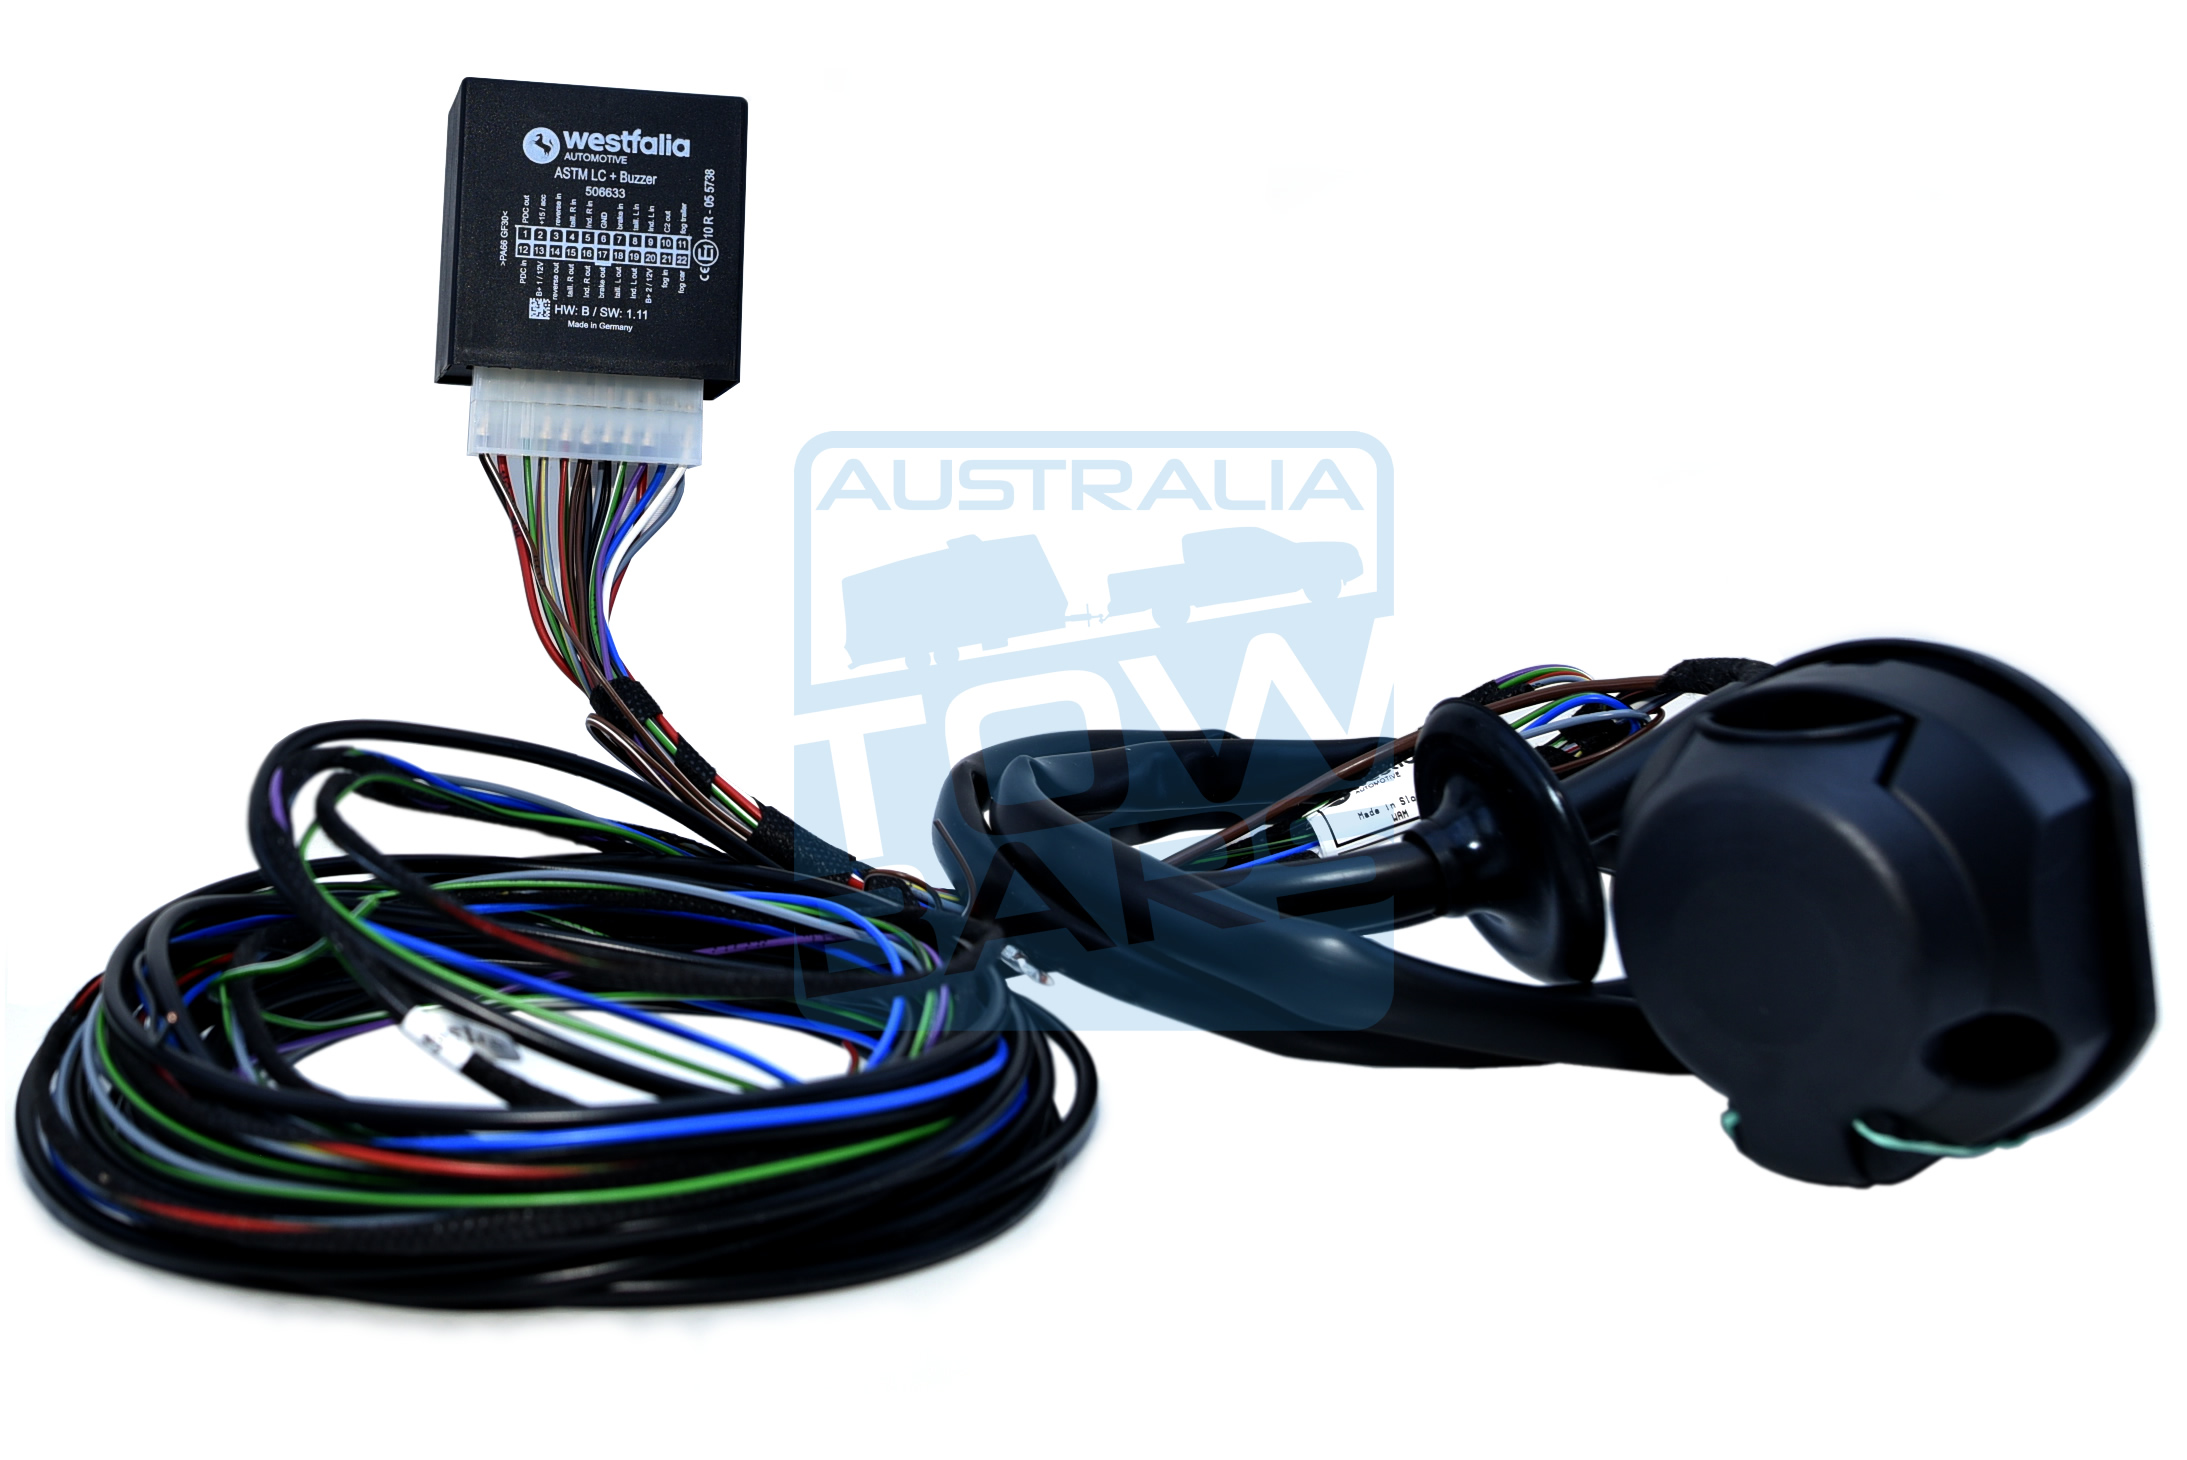 tow bar wiring kits block and schematic diagrams \u2022 car speaker wiring diagram wiring kits can bus tow bar modules australia towbars rh australiatowbars com au tow bar wiring diagram tow bar wiring kit for vwt4